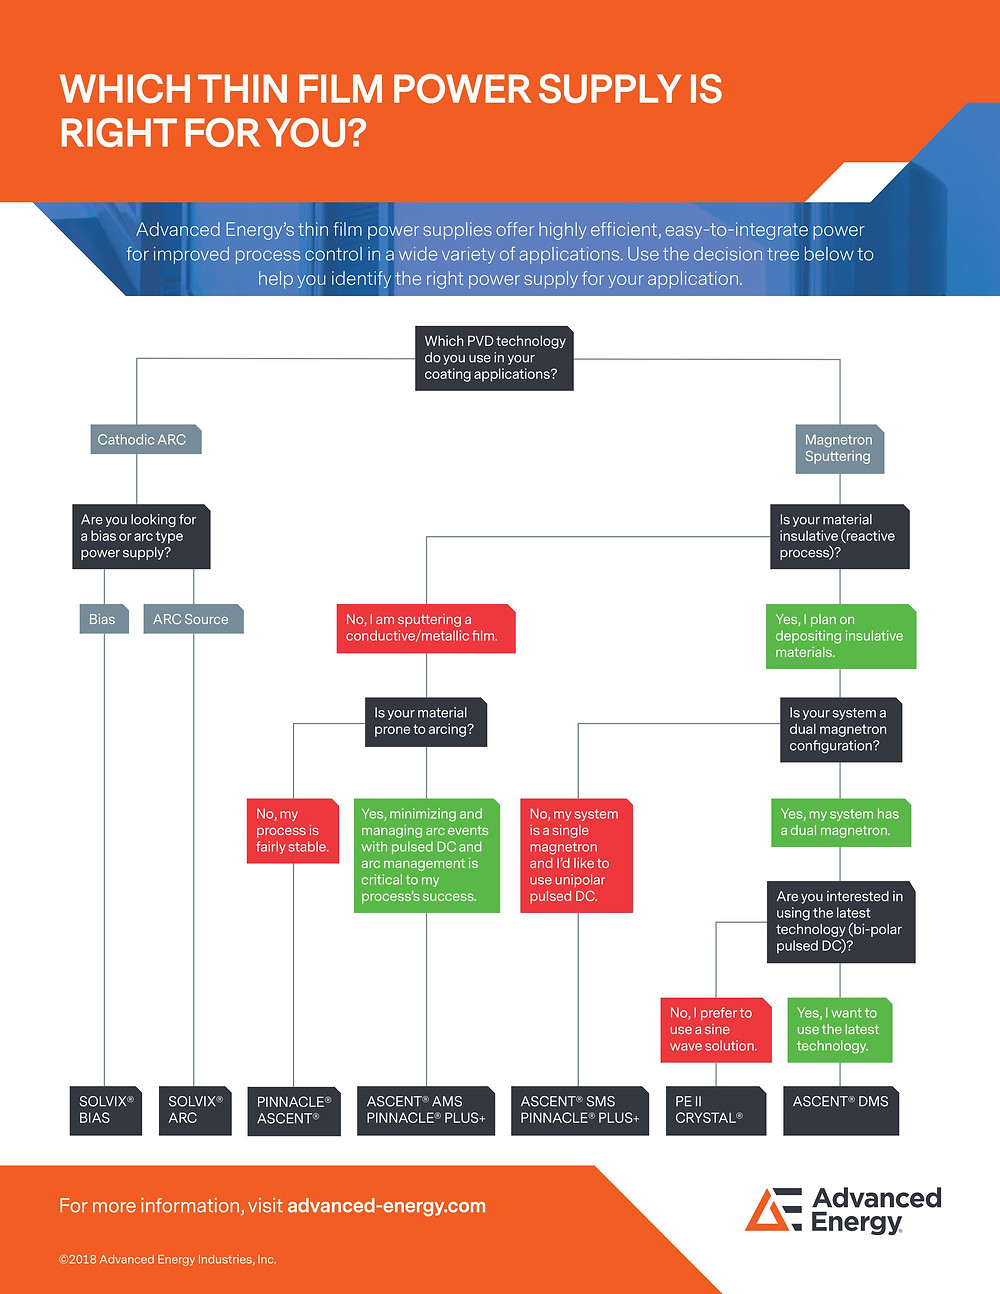 PVD power supply decision tree